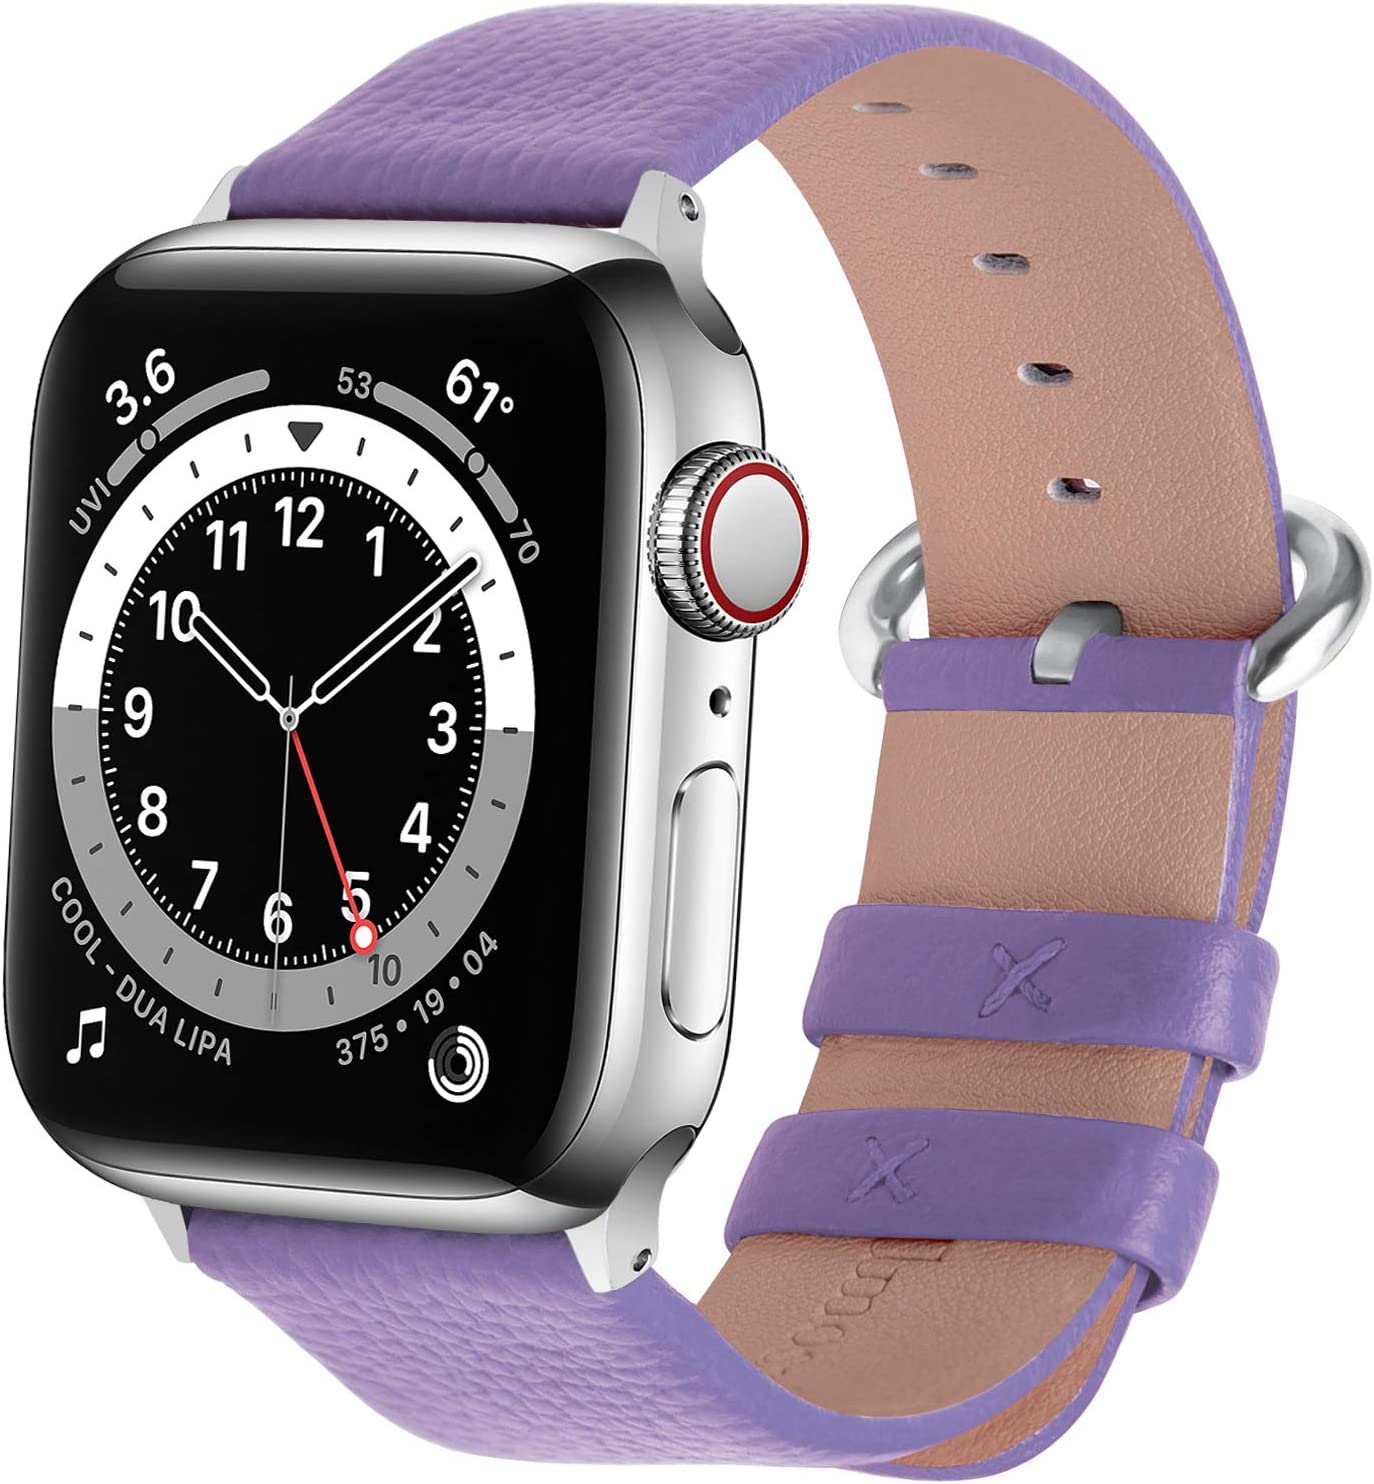 Fullmosa Compatible Apple Watch Band 38mm 40mm 42mm 44mm Calf Leather Compatible iWatch Band/Strap Compatible Apple Watch Series SE/6 Series 5 Series 4 Series 3 Series 2 Series 1,38mm 40mm Purple